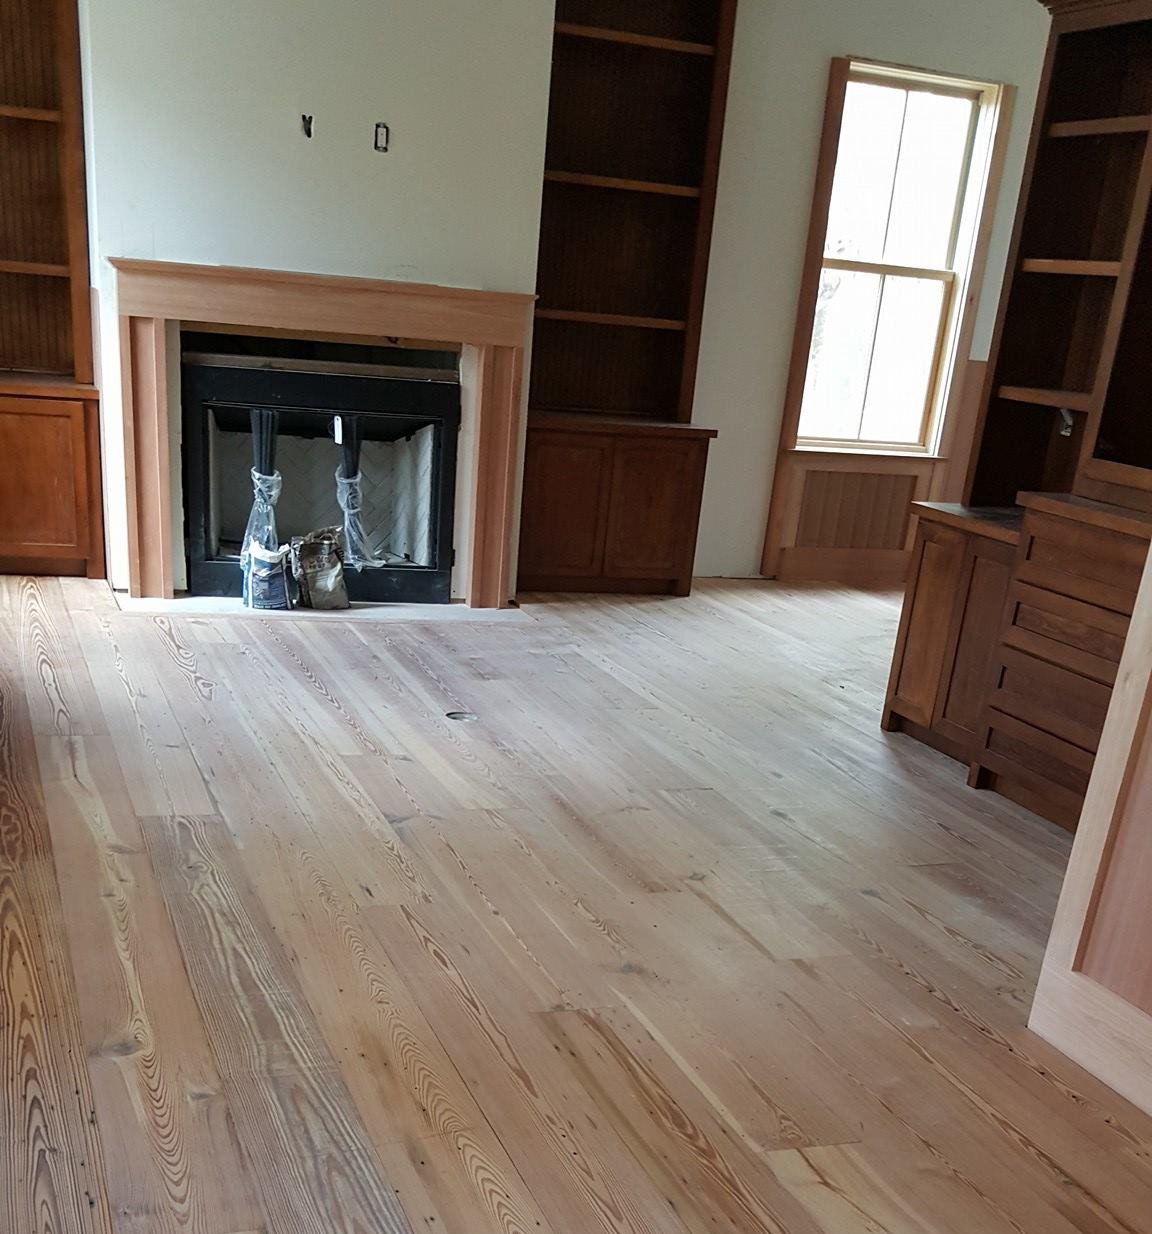 hardwood floor refinishing rockford il of olde savannah hardwood flooring regarding sand and refinish existing floors